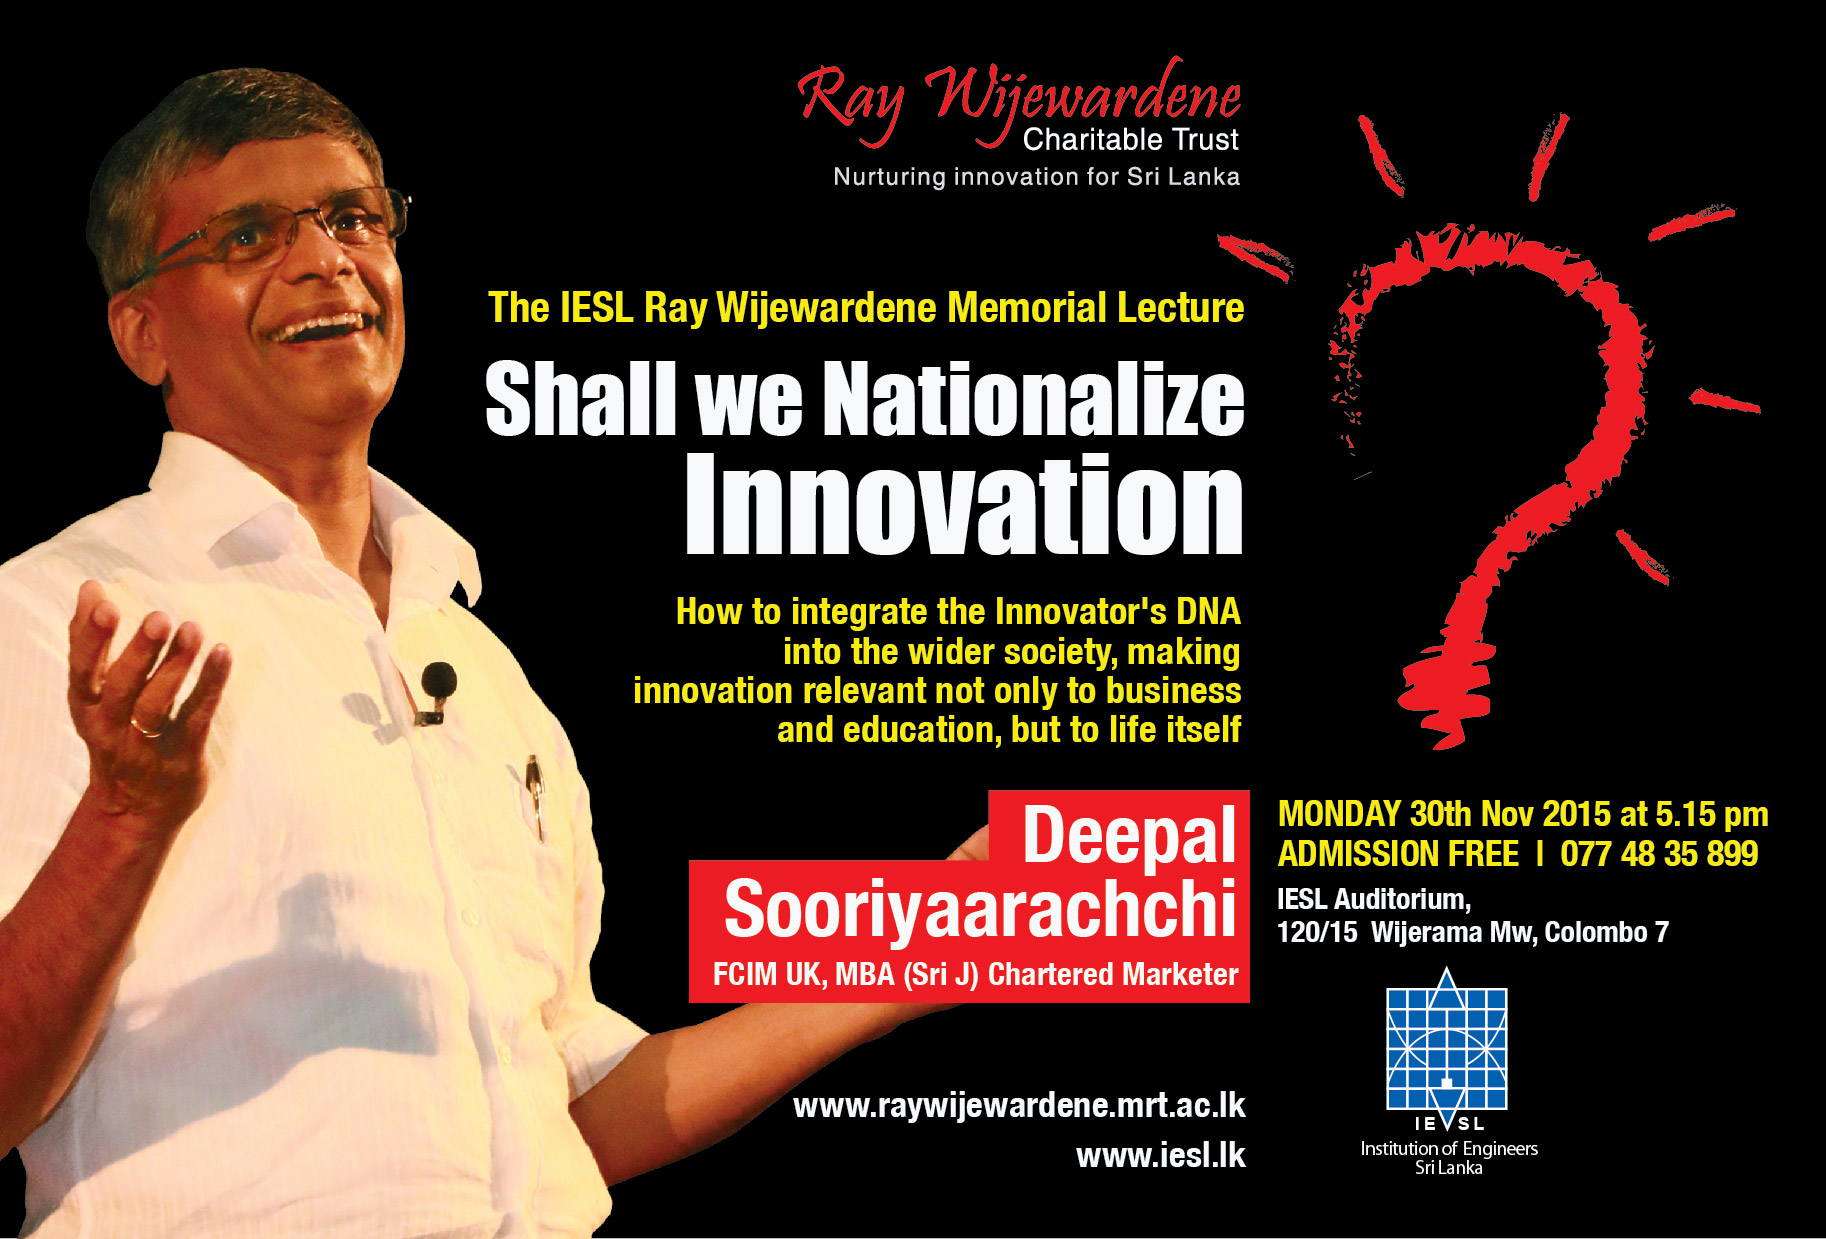 The IESL Ray Wijewardene Memorial Lecture